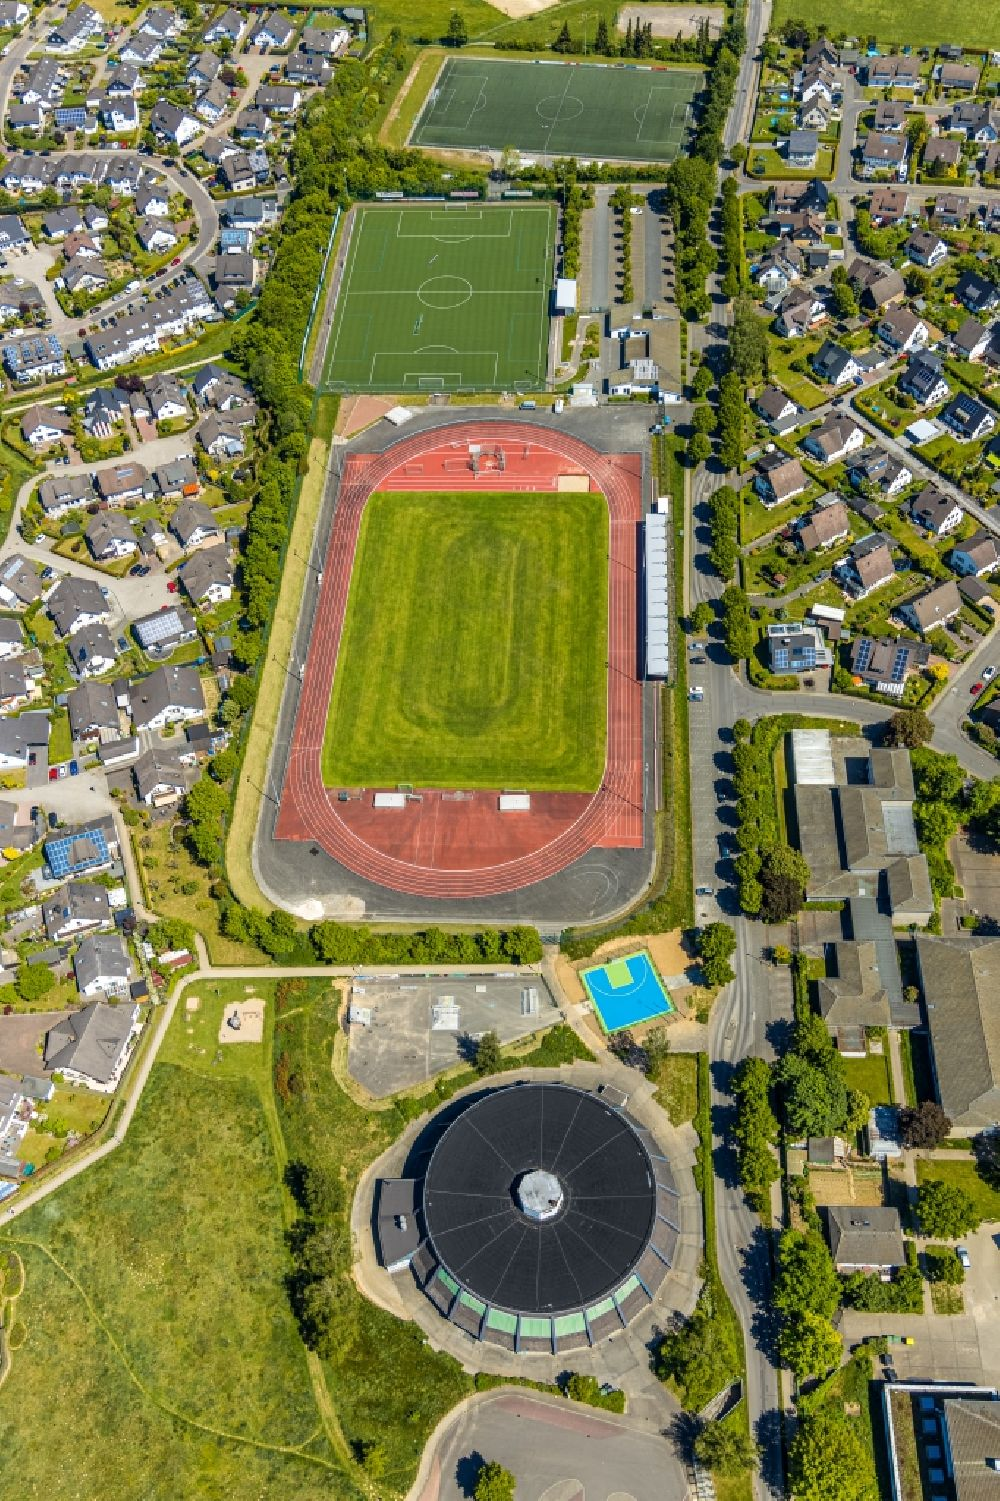 Attendorn from above - Hansa Stadium in Attendorn in the state of North Rhine-Westphalia, Germany